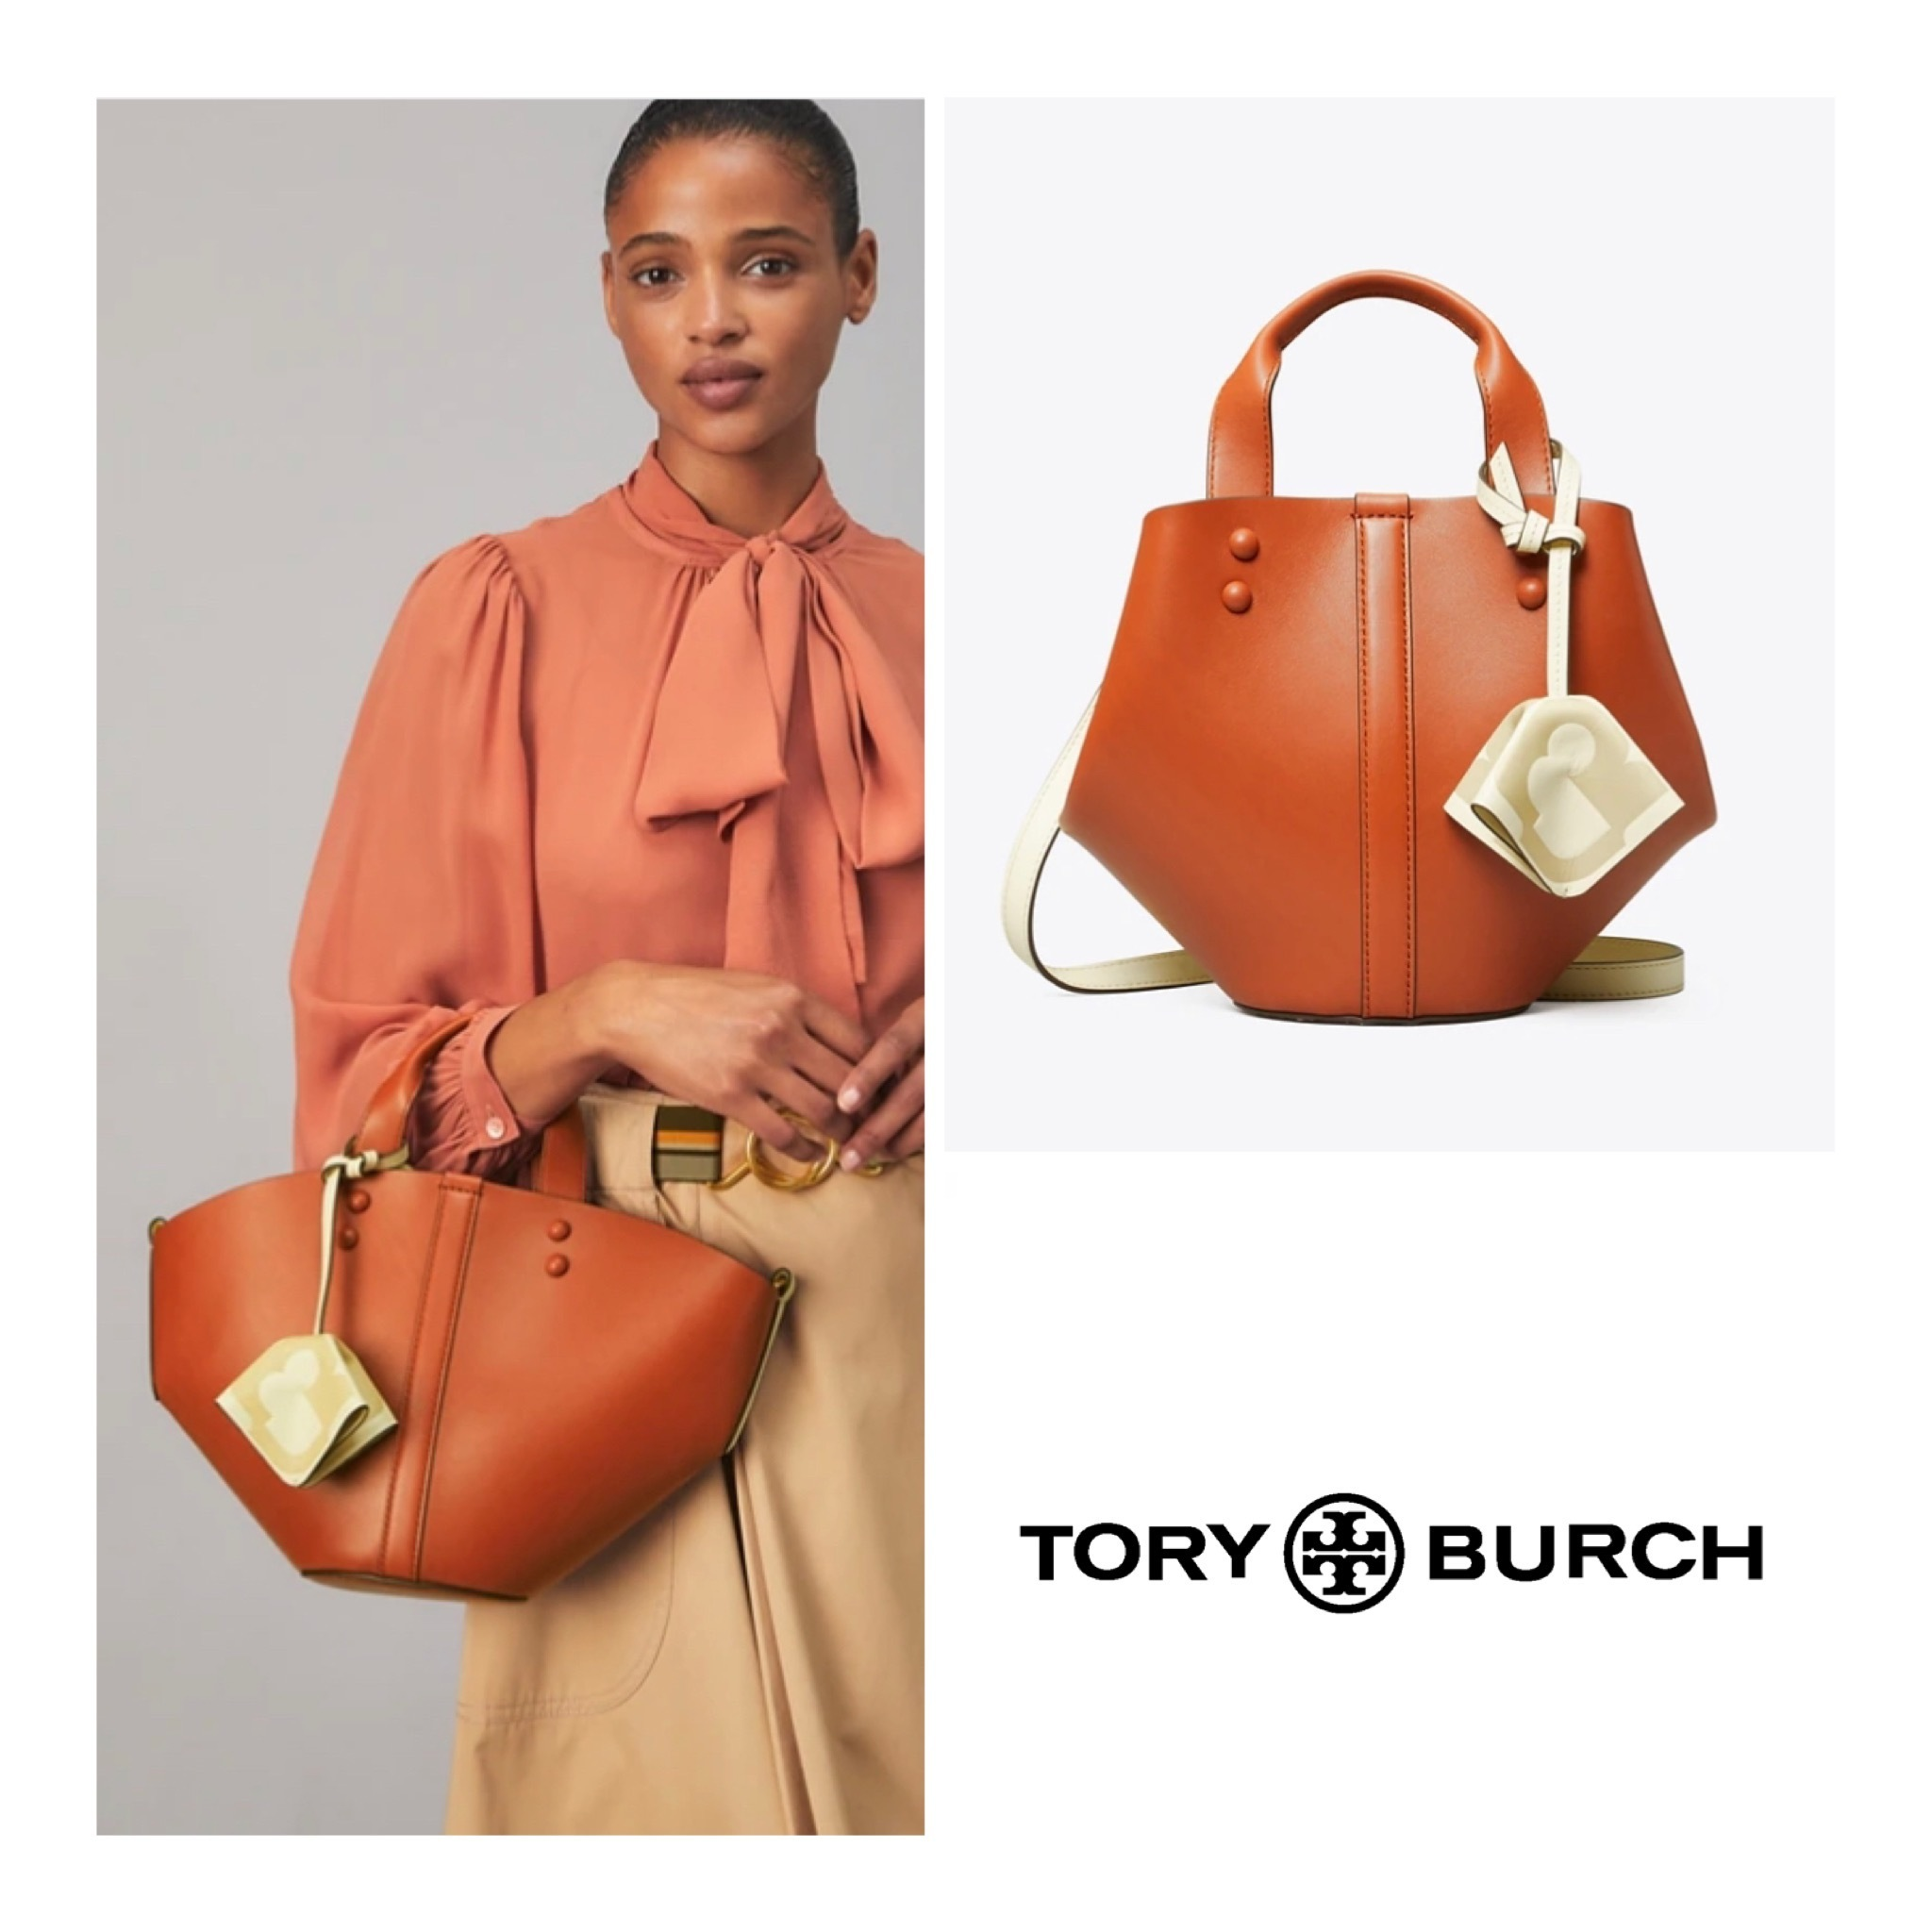 Tory Burch☆ New!! SETE SMALL TOTE BAG (Tory Burch/トートバッグ) 71719608